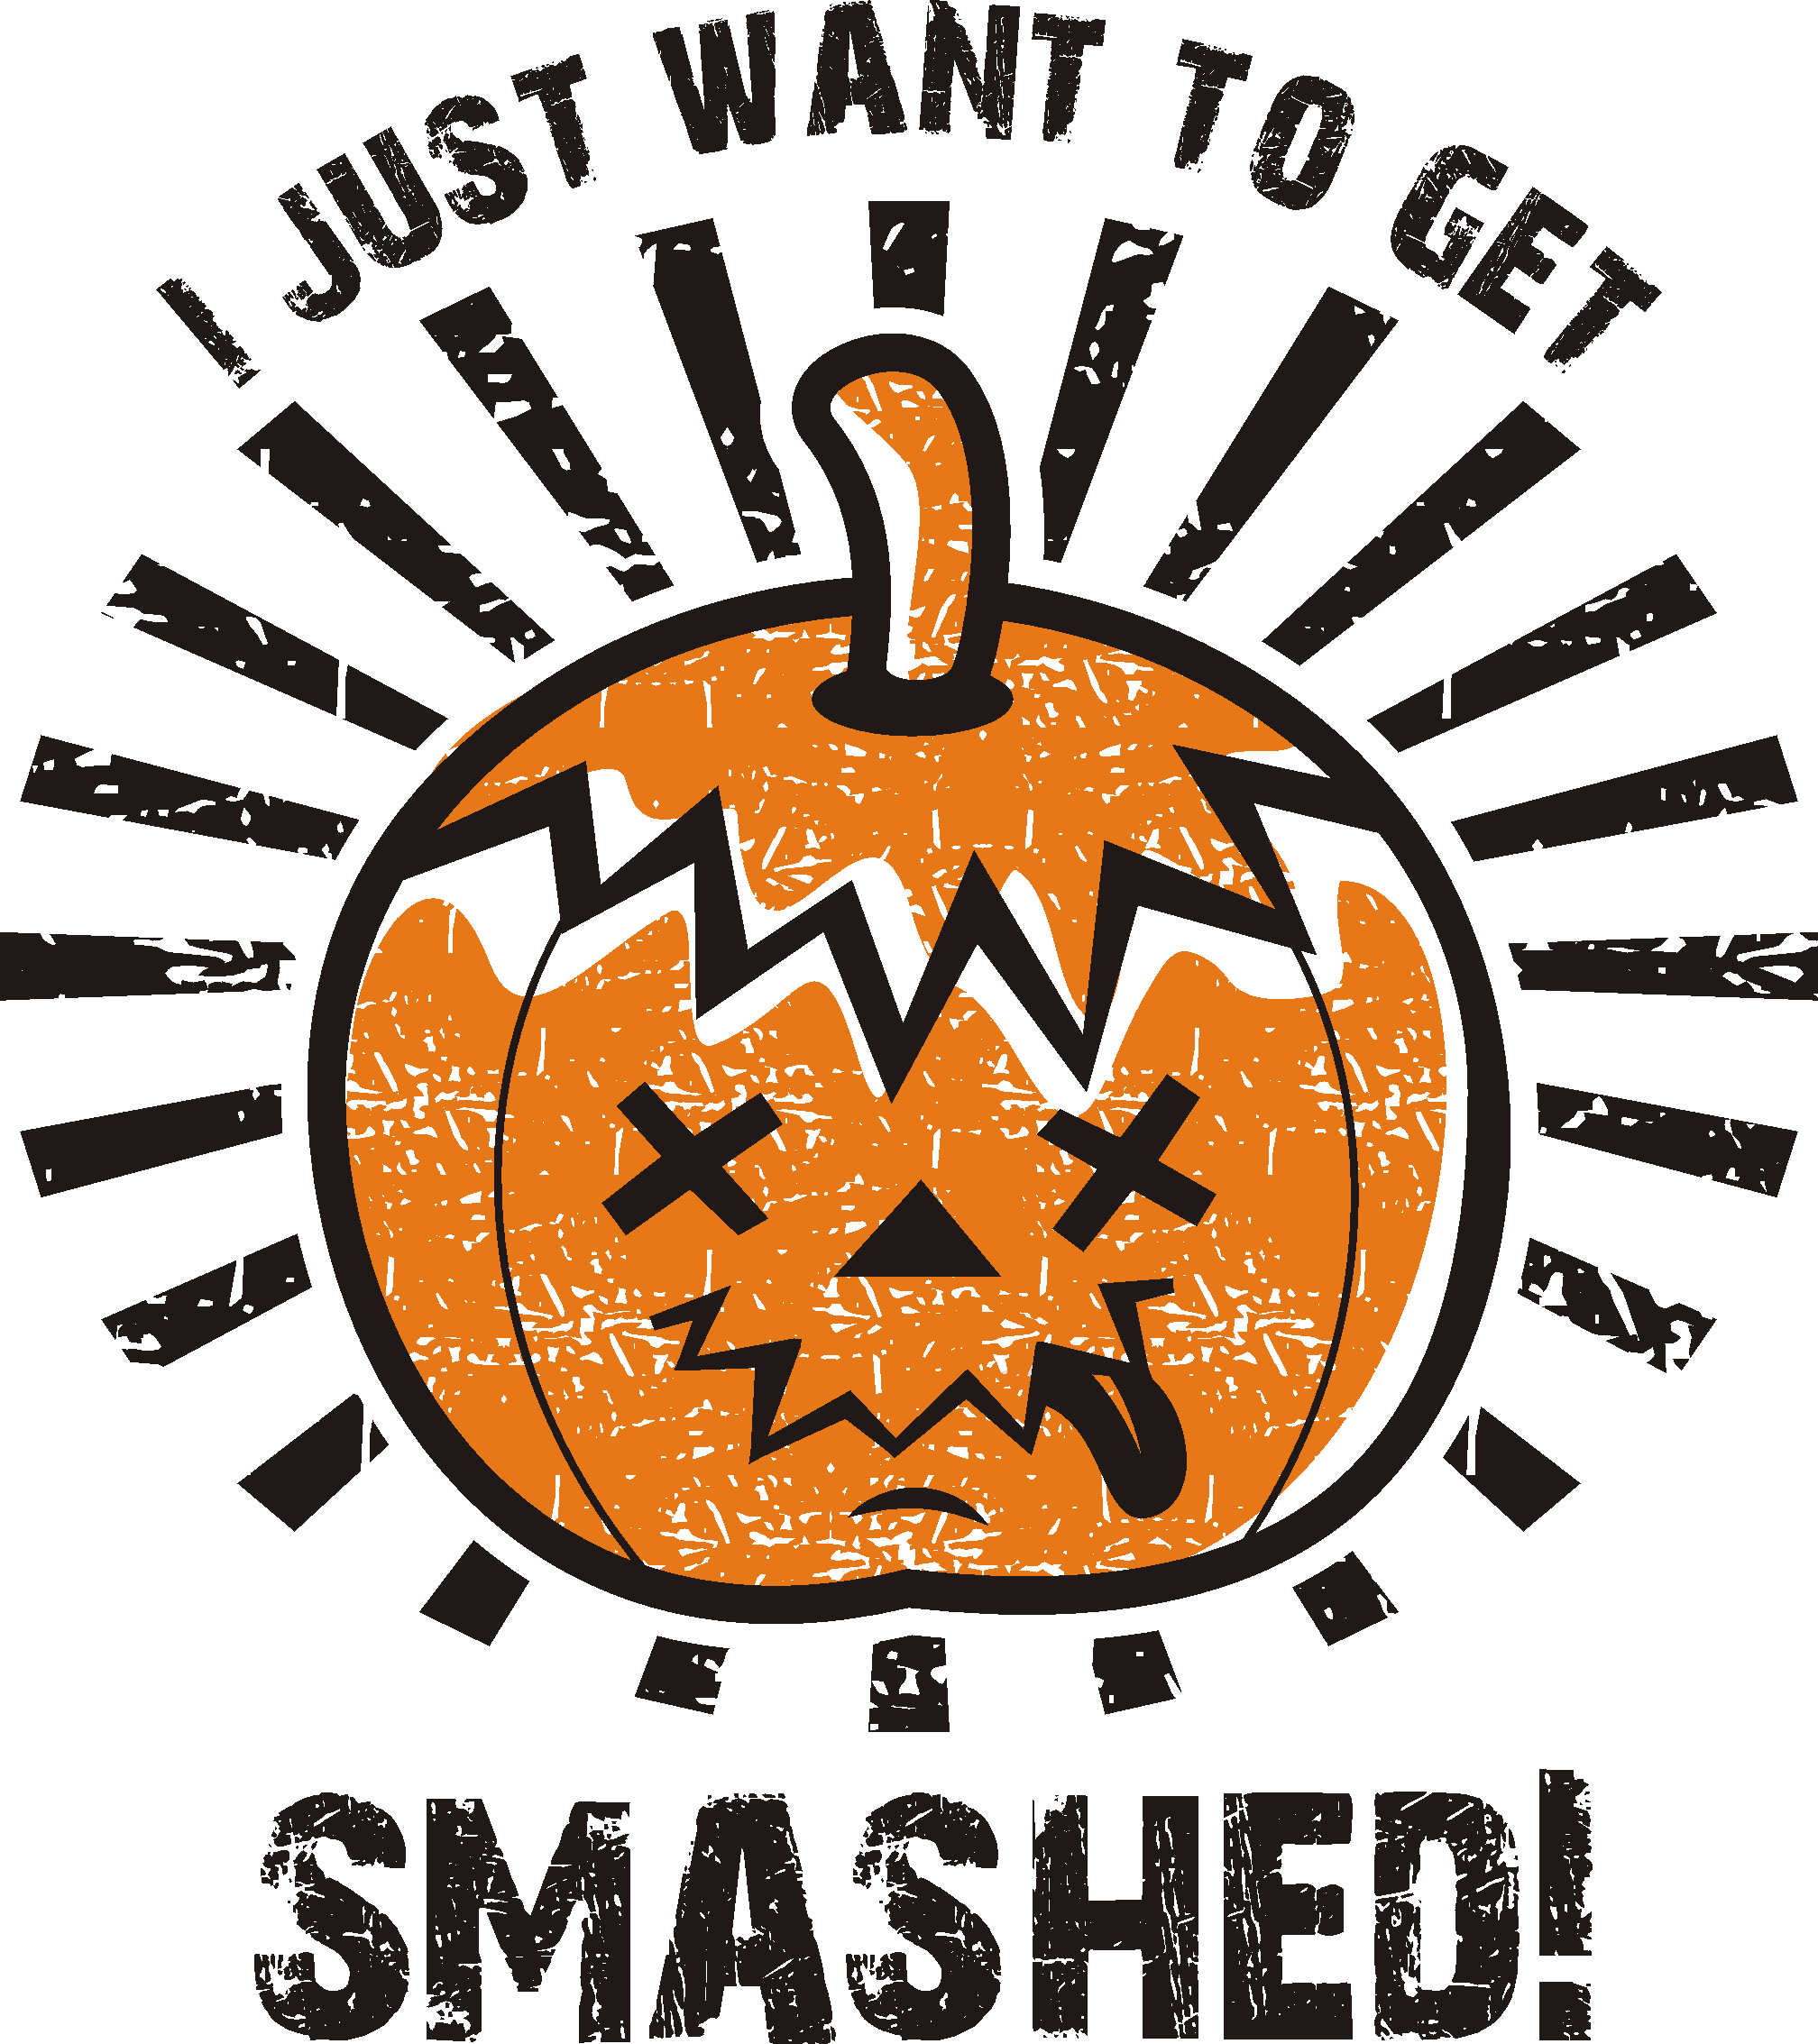 Halloween Themed T-shirt for Nightlife Party - Image & Text